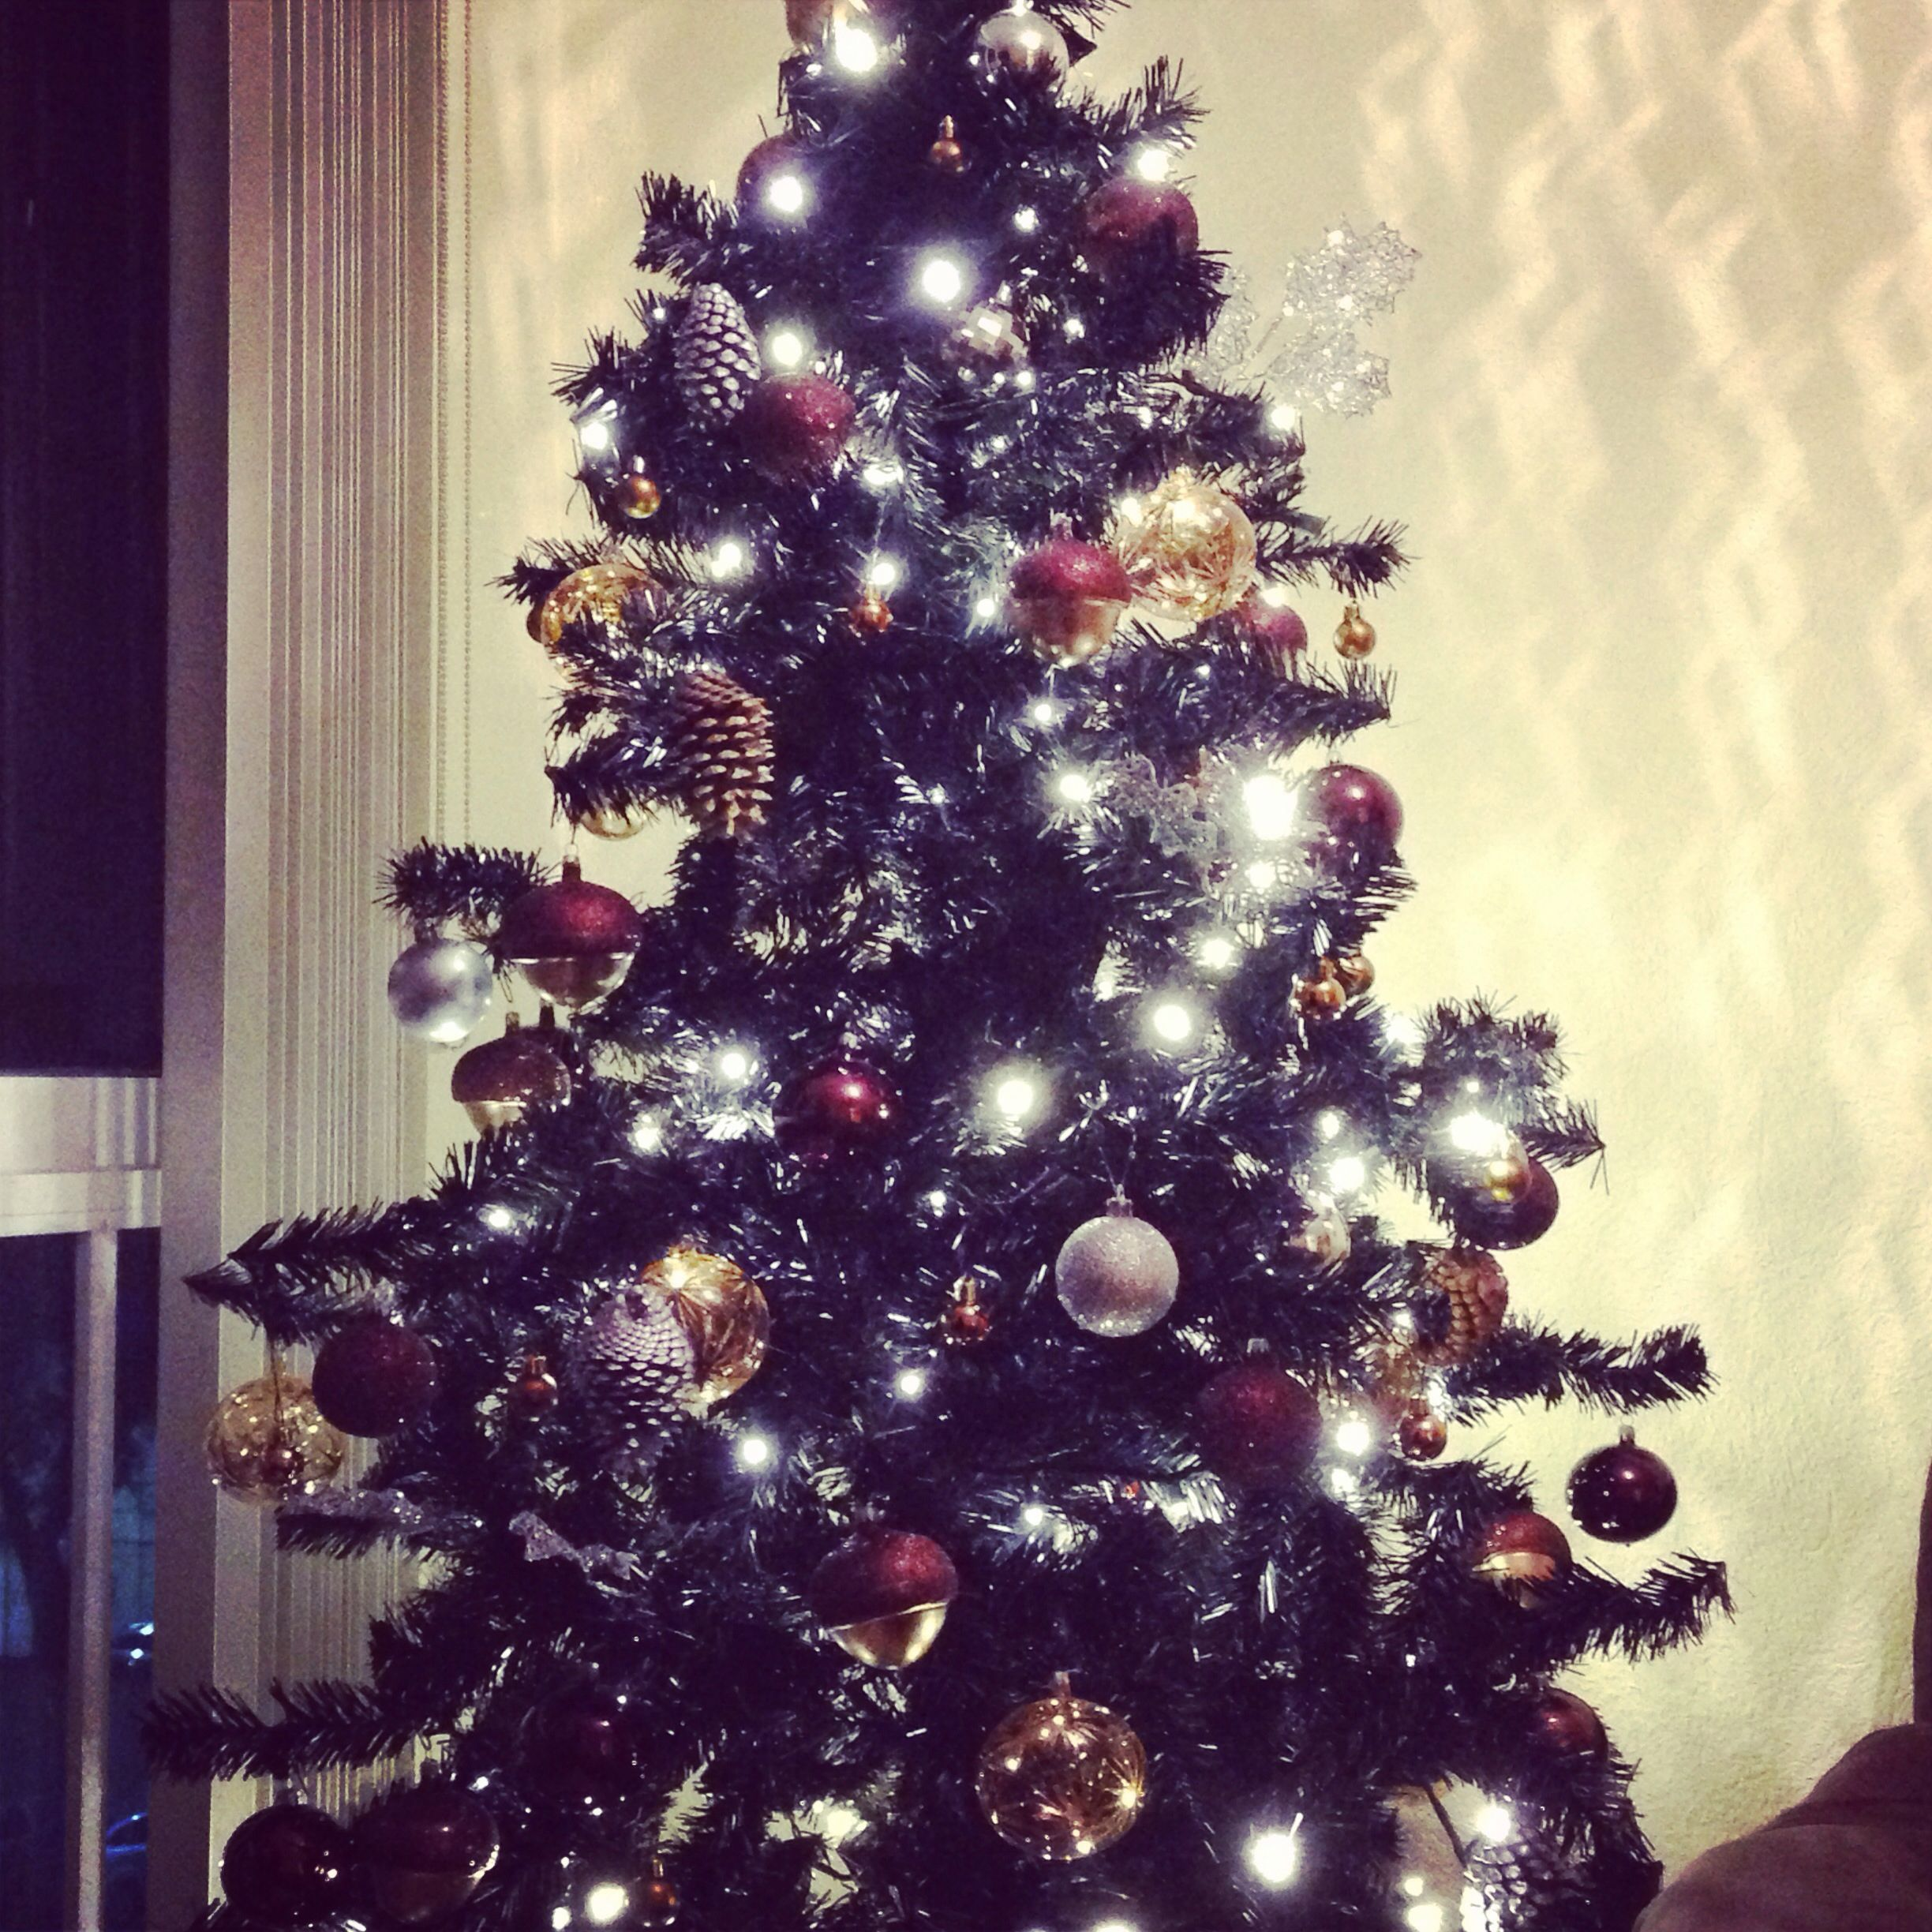 My Black Christmas Tree